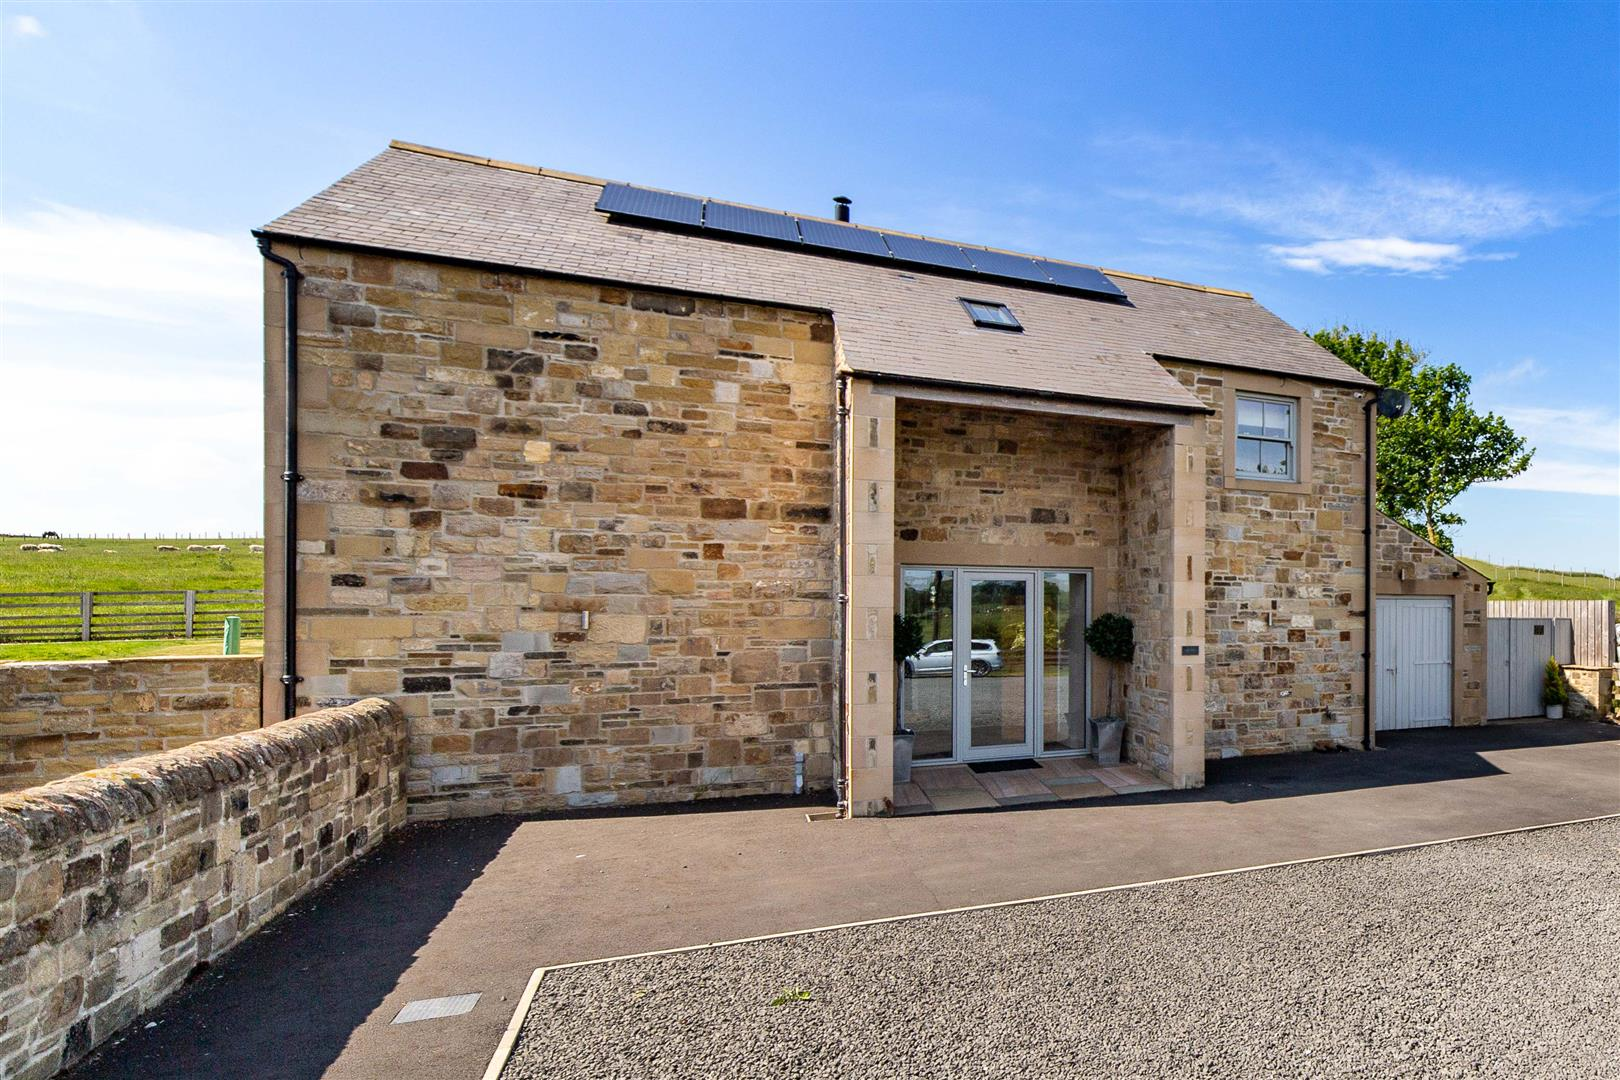 4 bed detached house for sale, Hexham 29